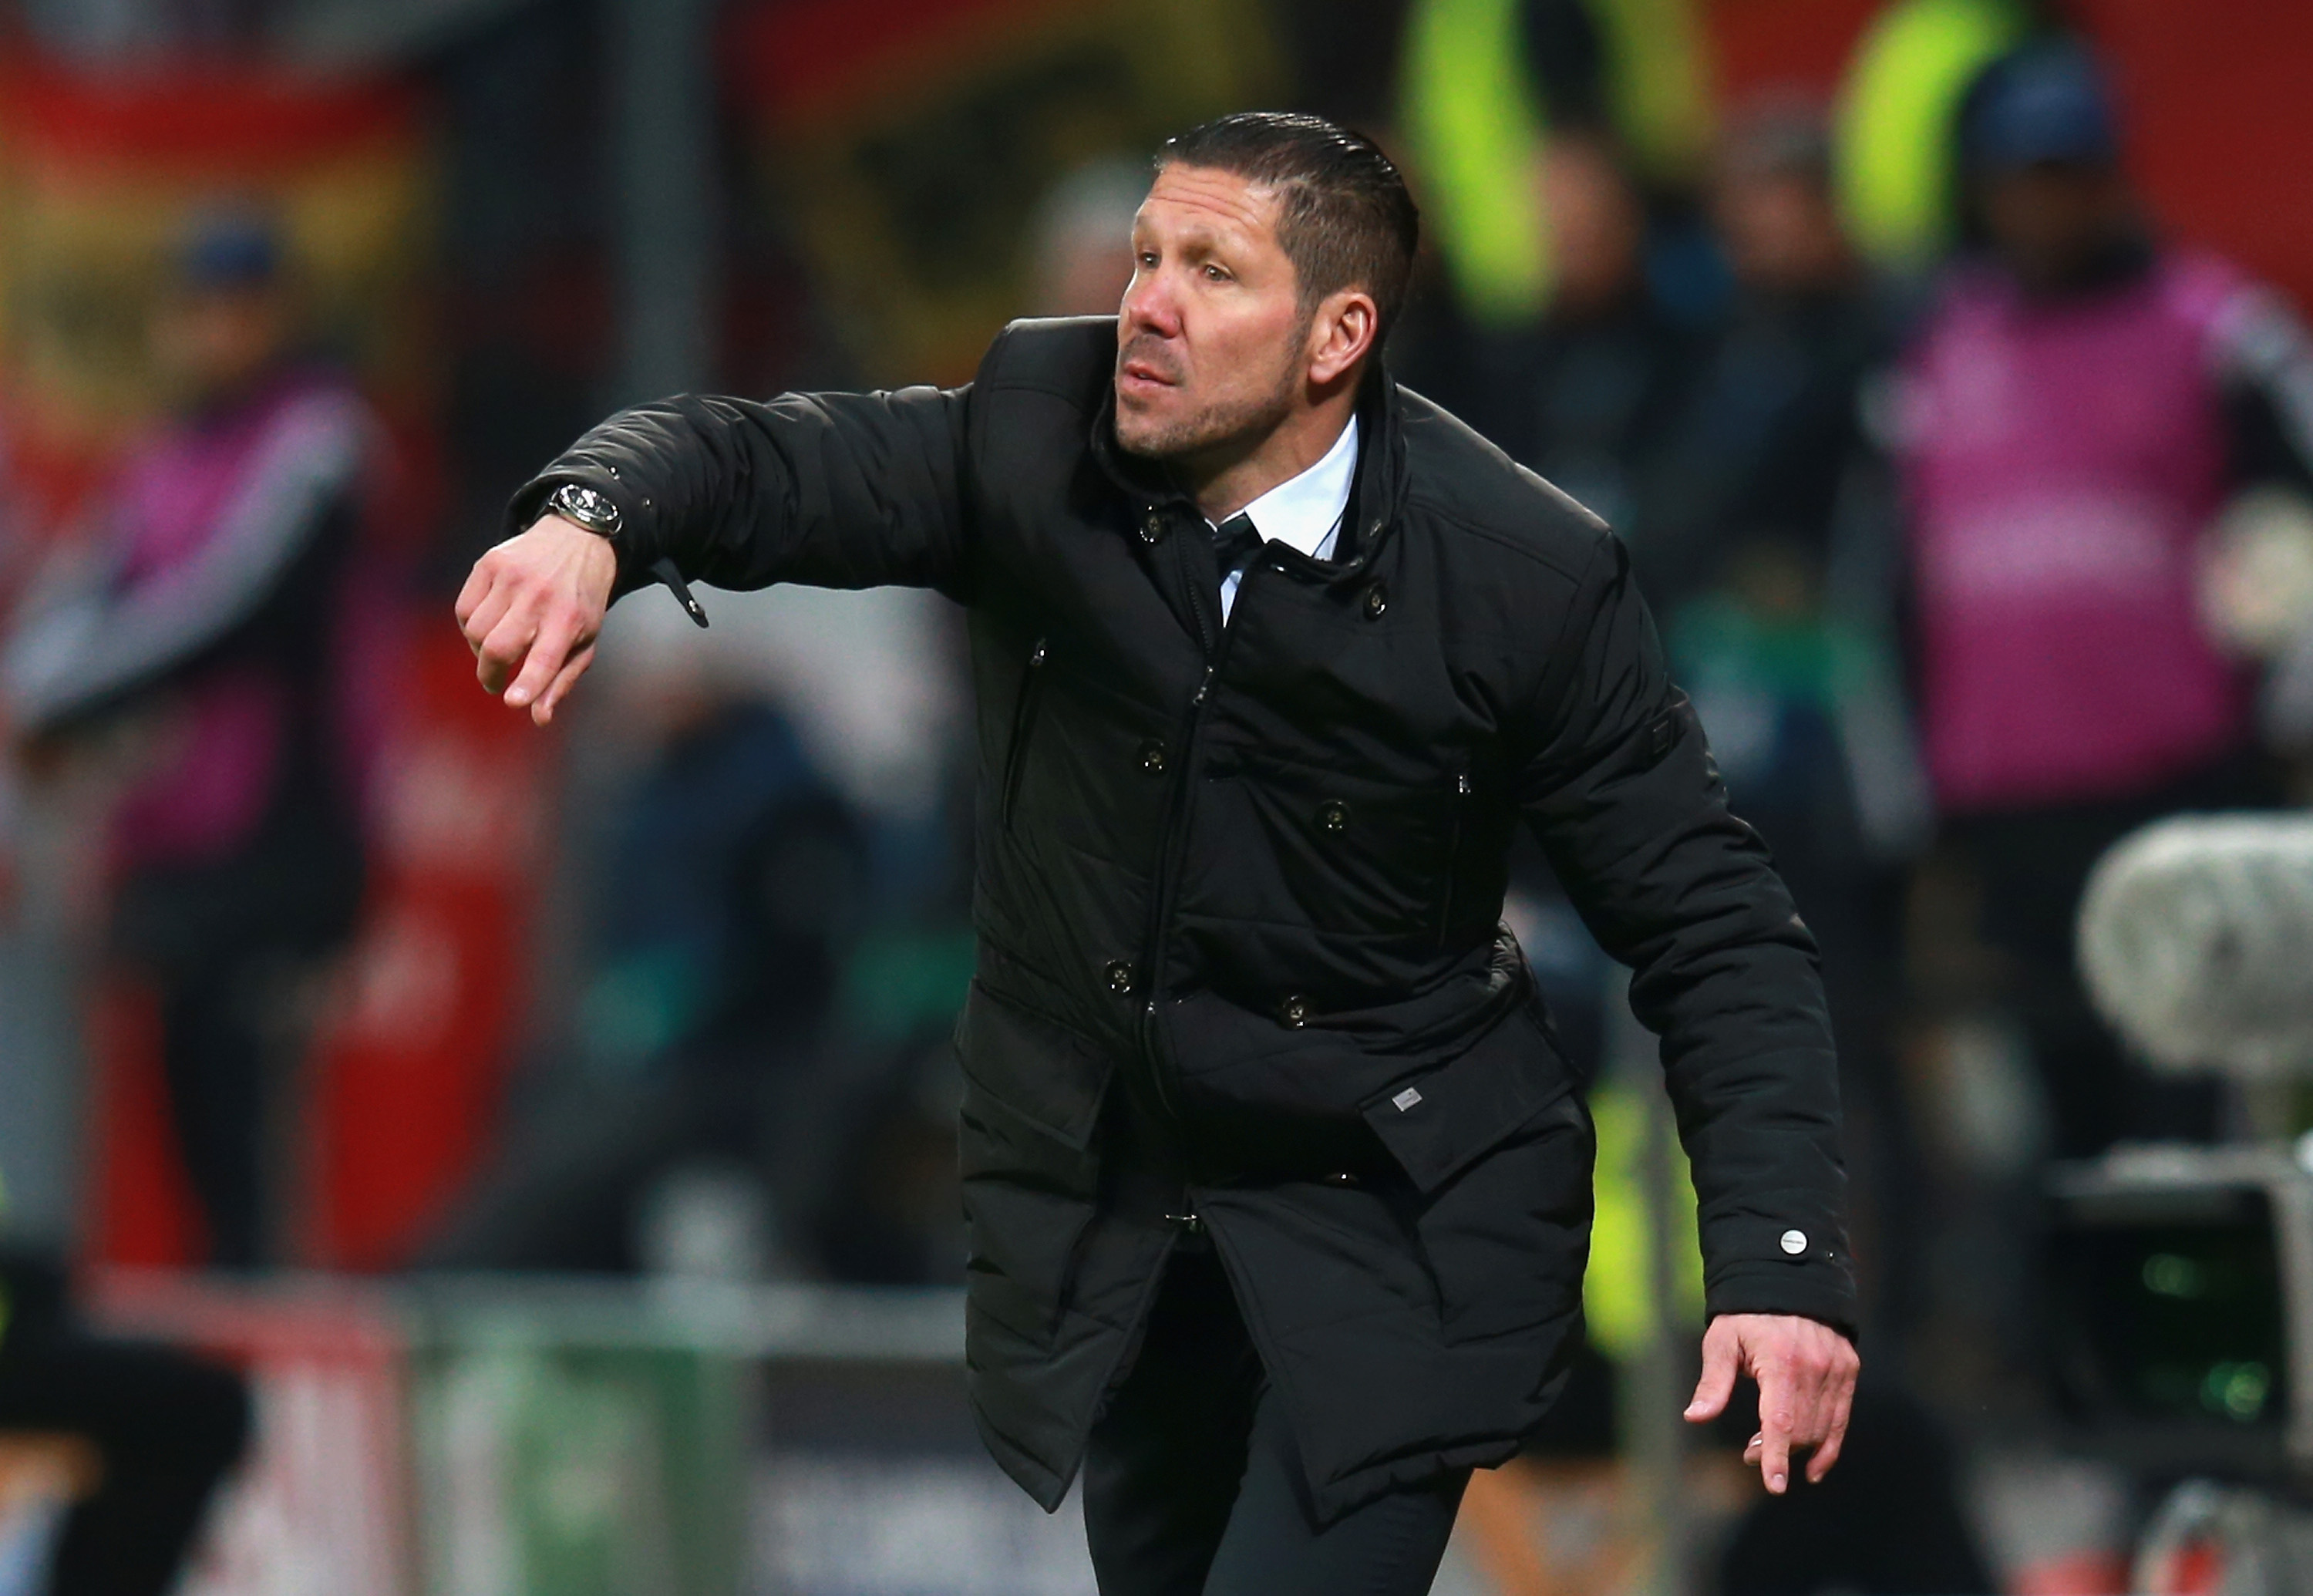 FEBRUARY 25: Head Coach Diego Simeone of Atletico Madrid on the touchline during the UEFA Champions League round of 16 match between Bayer 04 Leverkusen and Club Atletico de Madrid at BayArena on February 25, 2015 in Leverkusen, Germany.